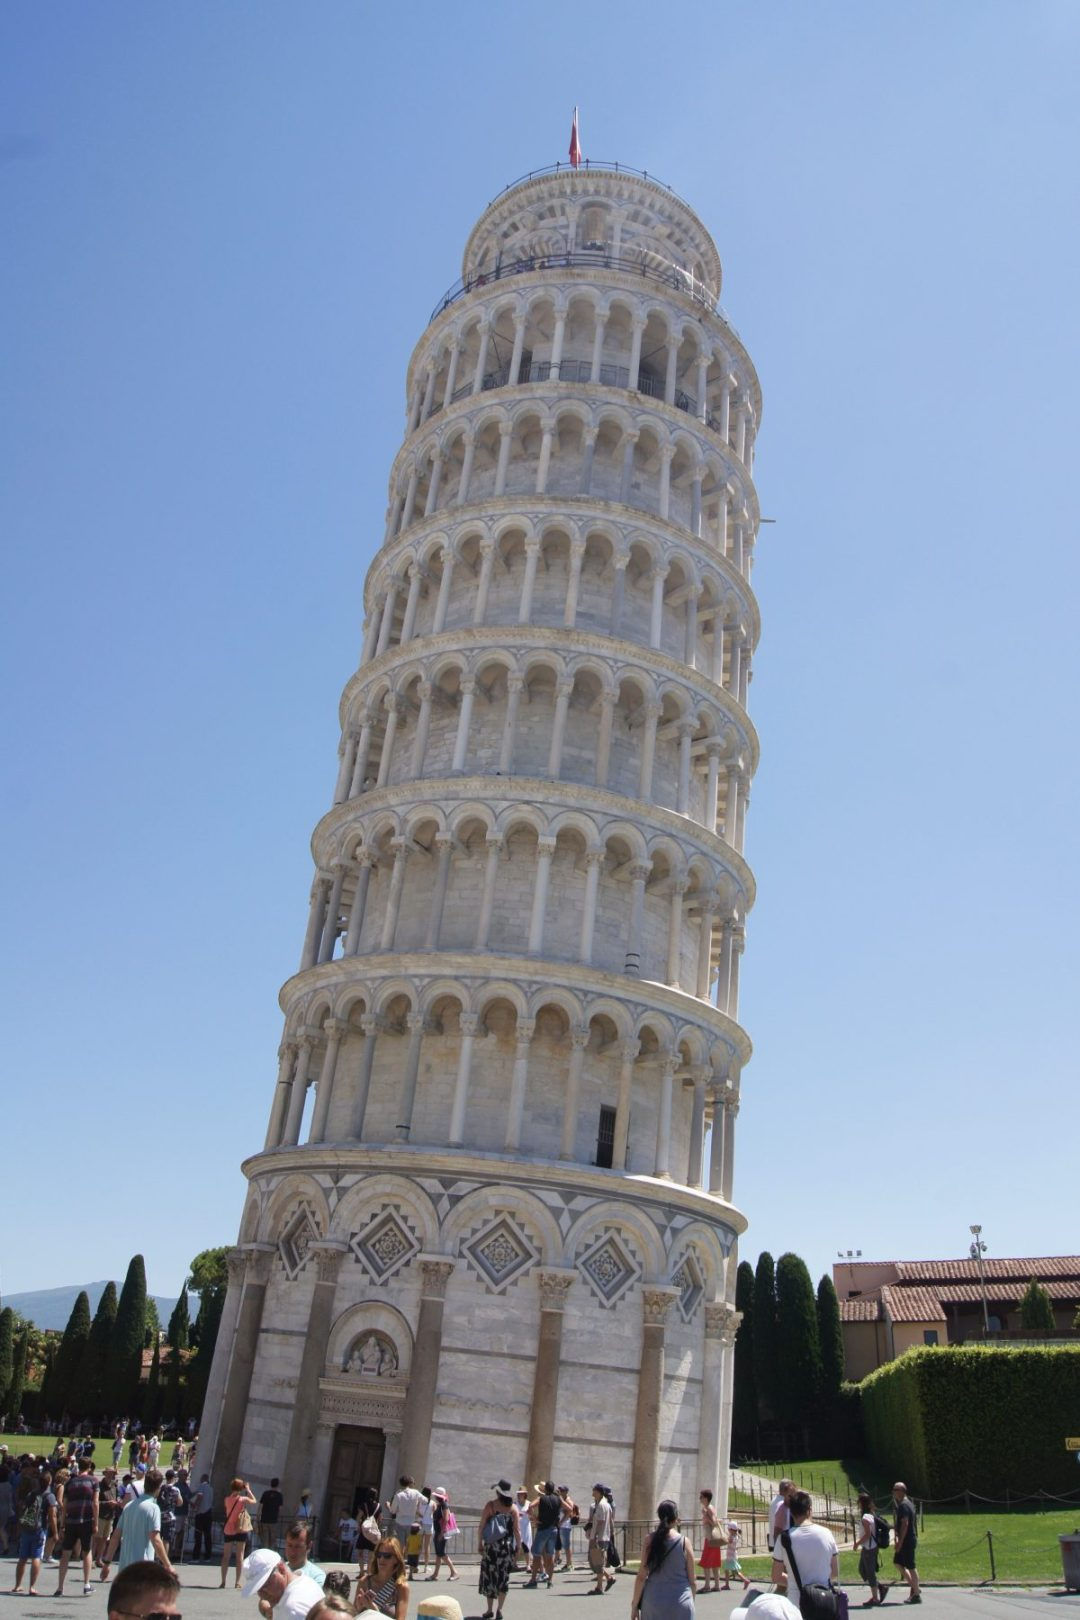 The leaning tower of pisa exploring kiwis - Leaning tower of pisa ...